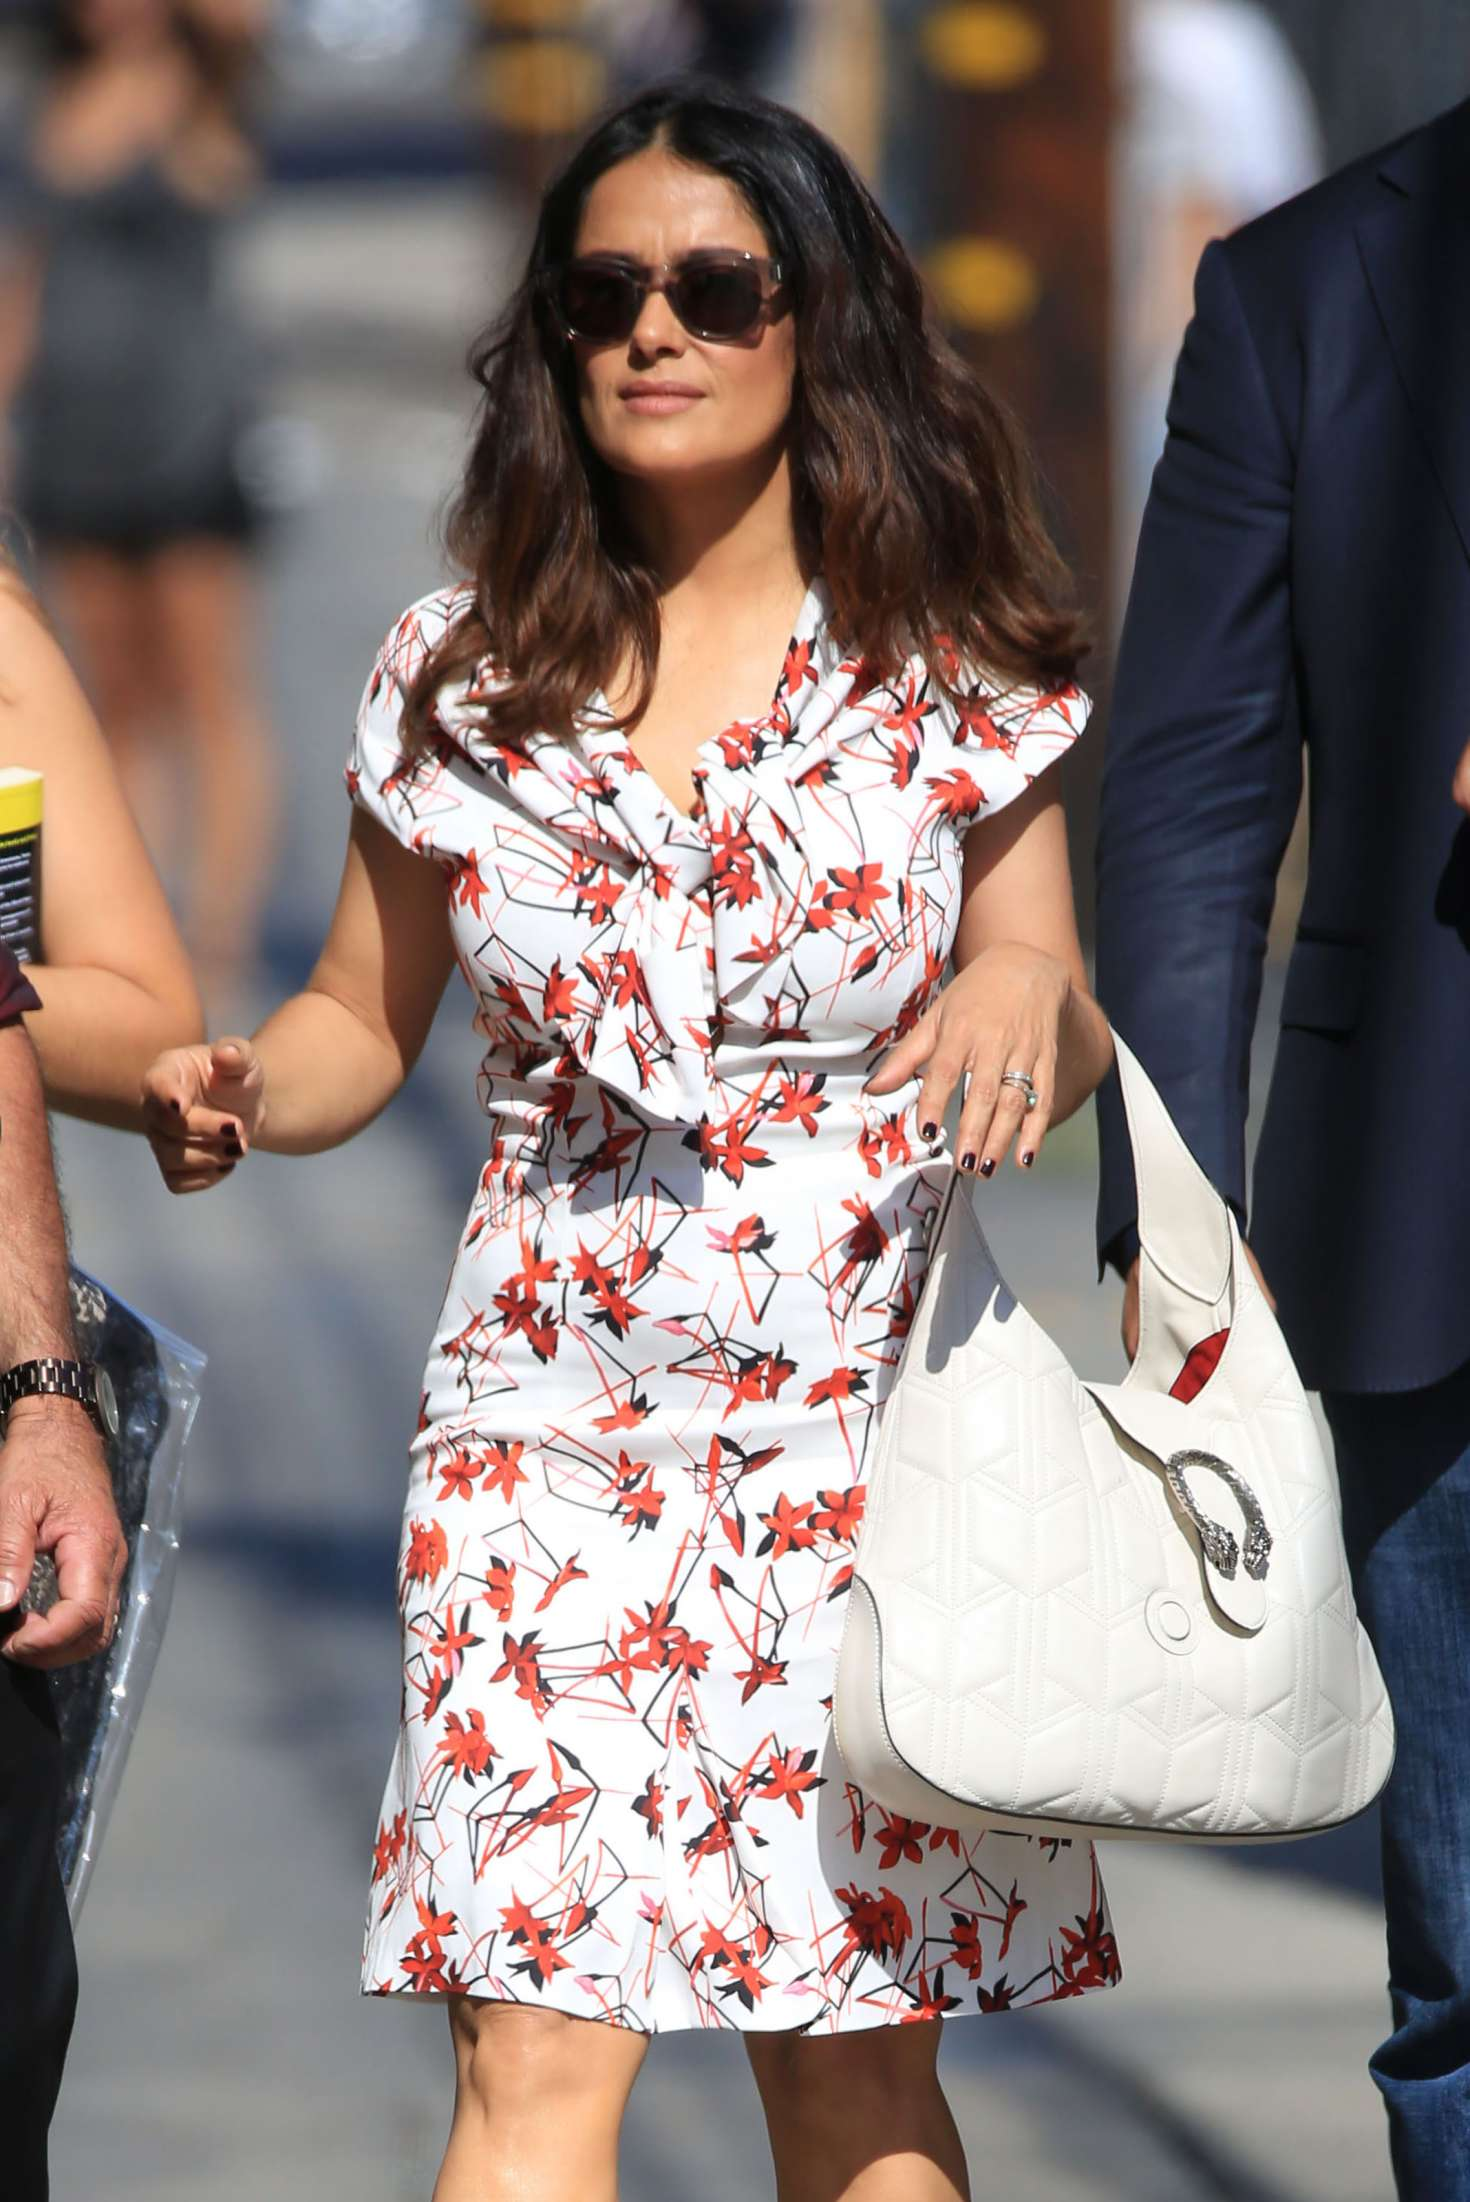 Salma Hayek at The Jimmy Kimmel Live! Set in Hollywood